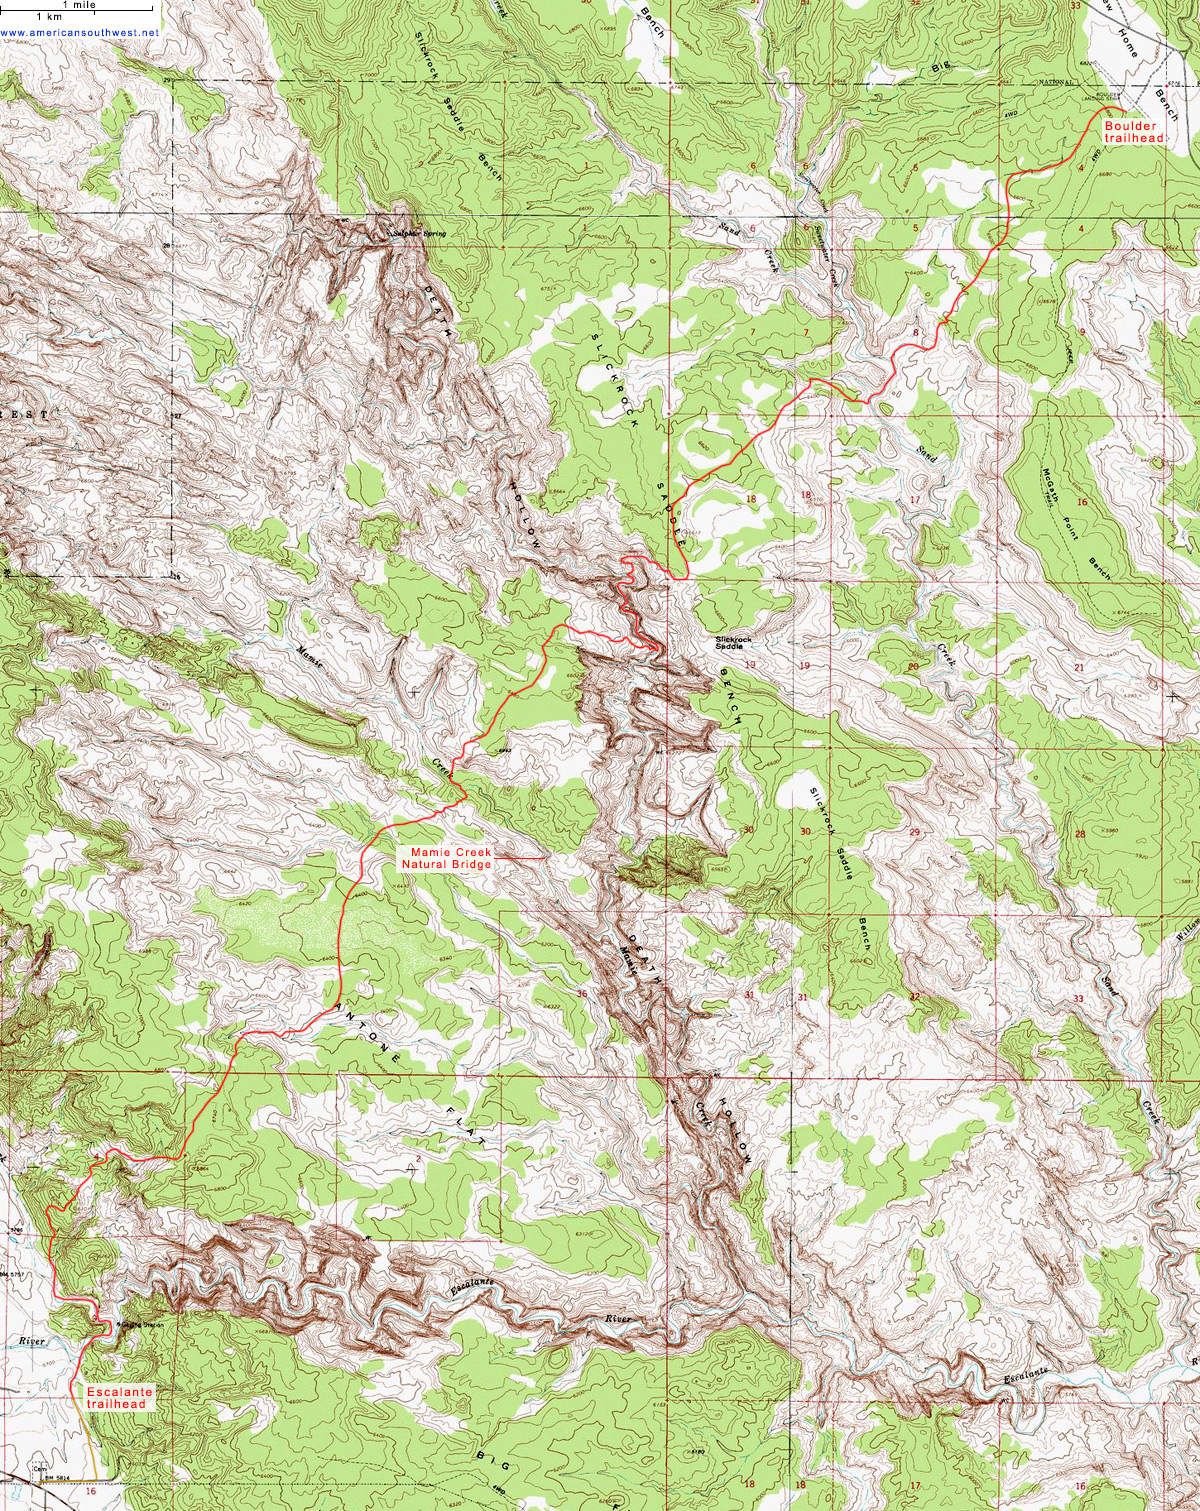 Topographic Map of the Boulder Mail Trail, Grand Staircase